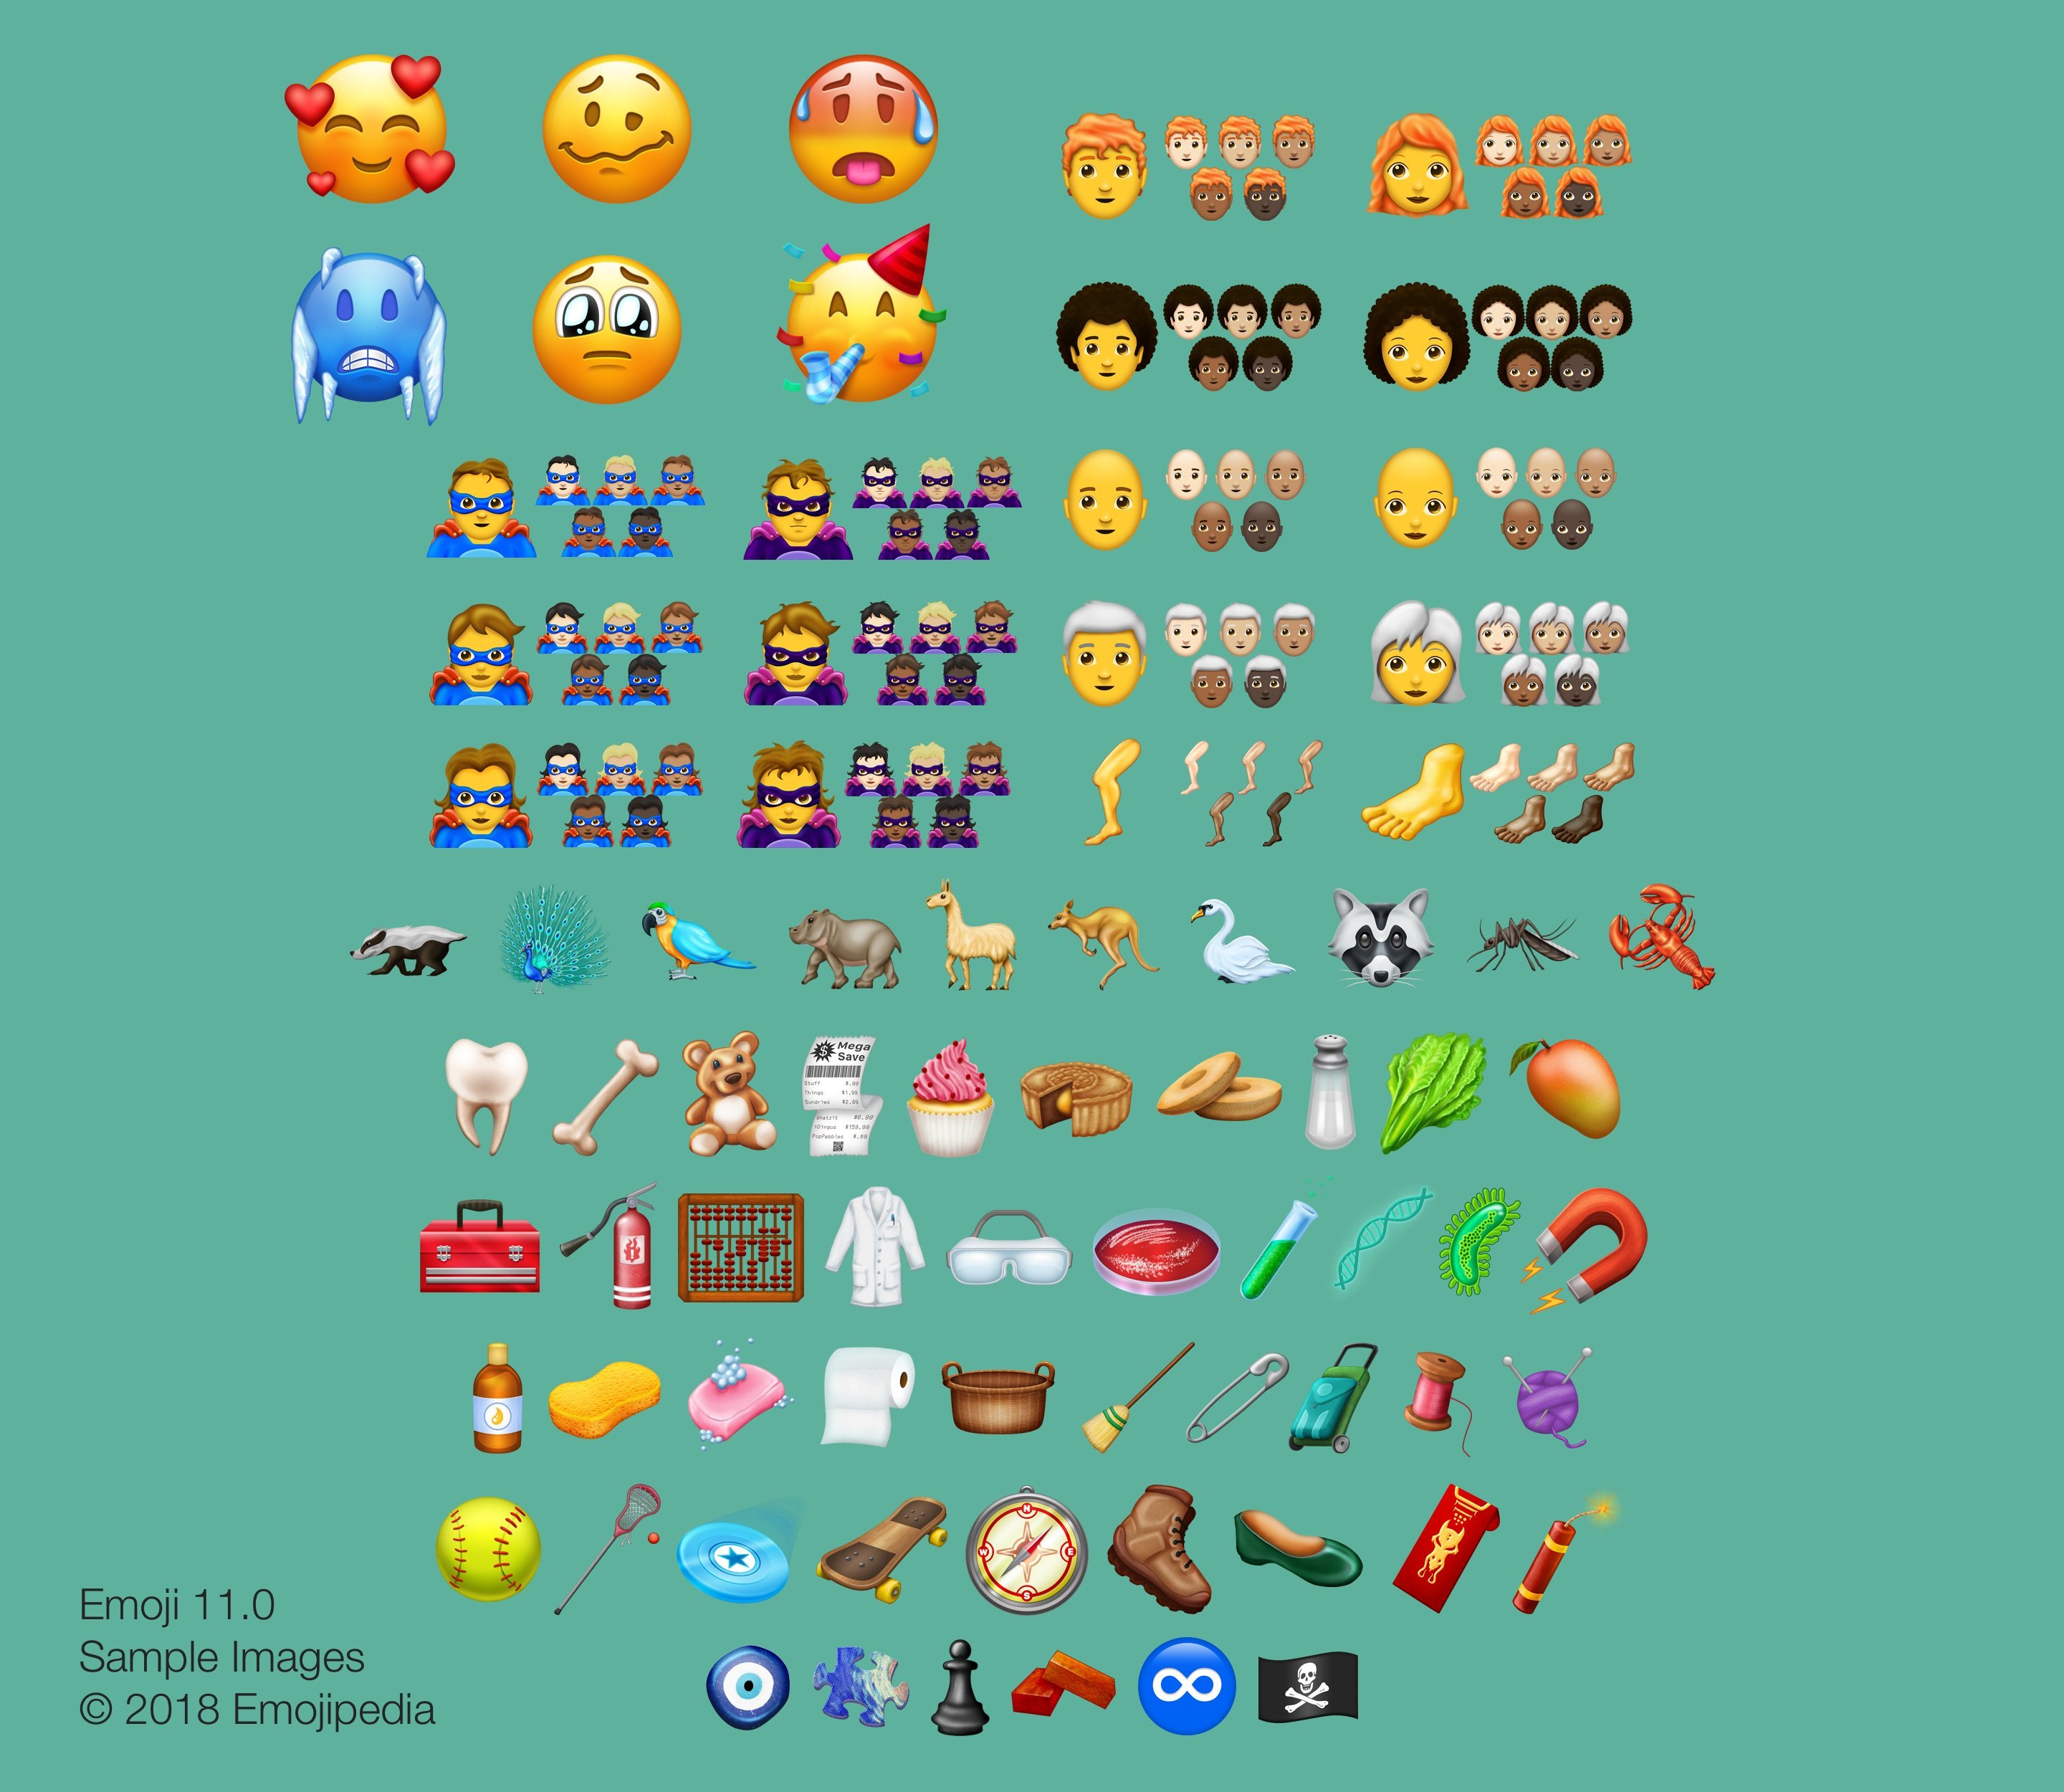 The latest collection includes a cupcake, lobster, pirate flag and more expressive smiley faces. (Source: Emojipedia)